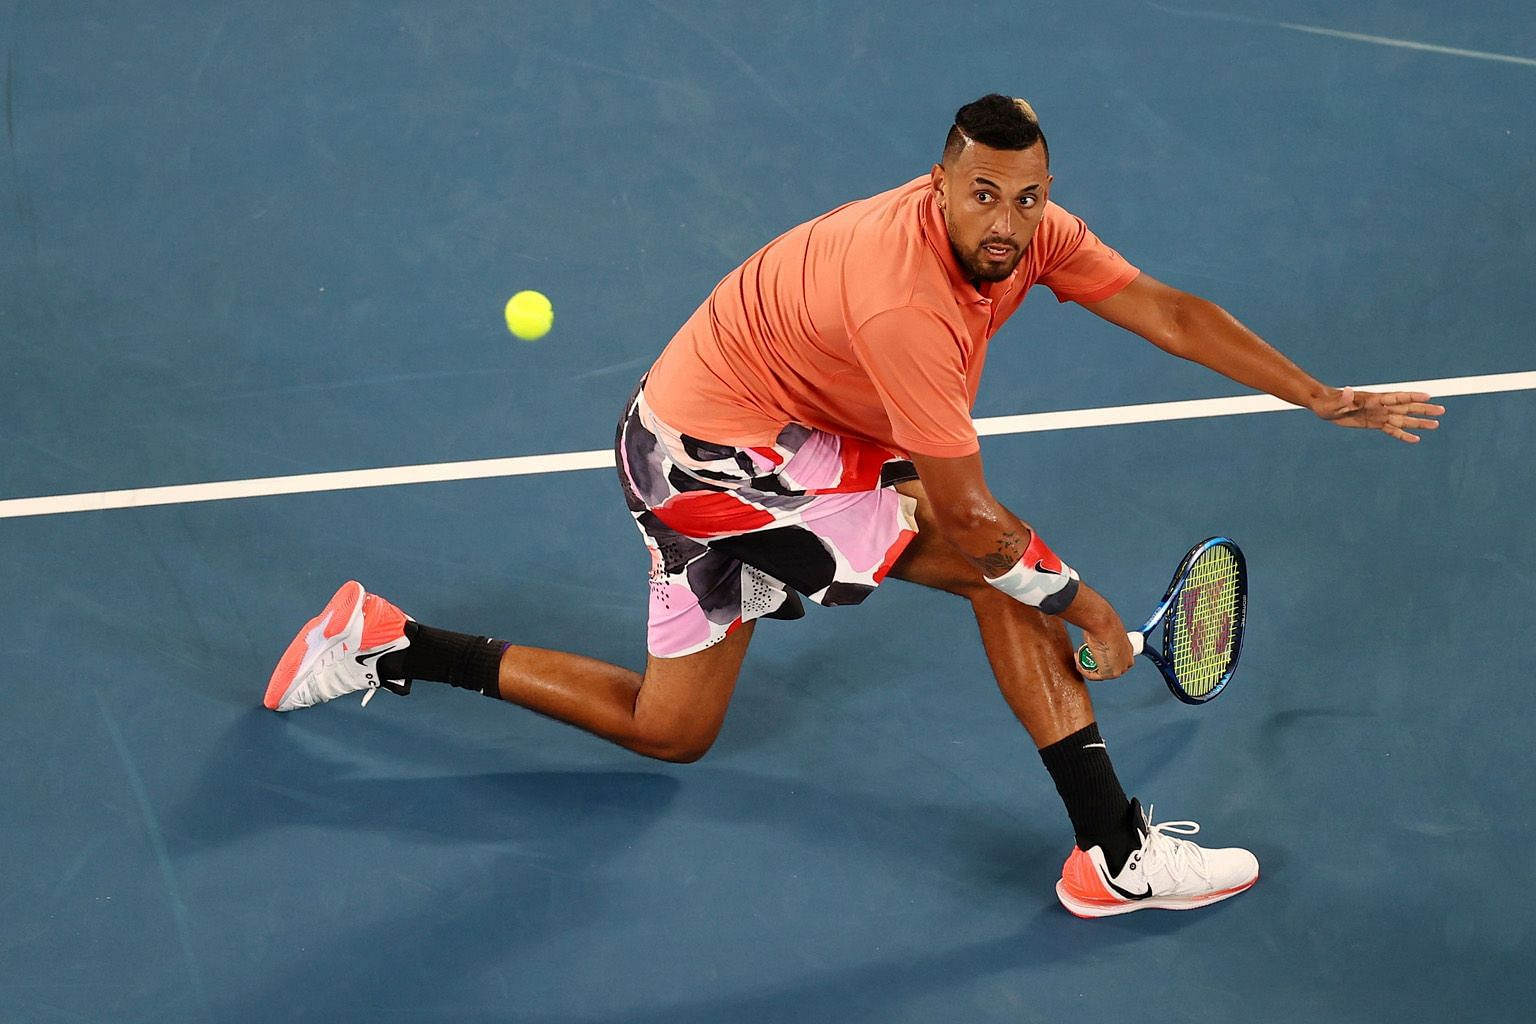 Combative player Nick Kyrgios at the Australian Open in January. He is adamant that tennis in the US should not restart until the country resolves its coronavirus and social unrest issues.